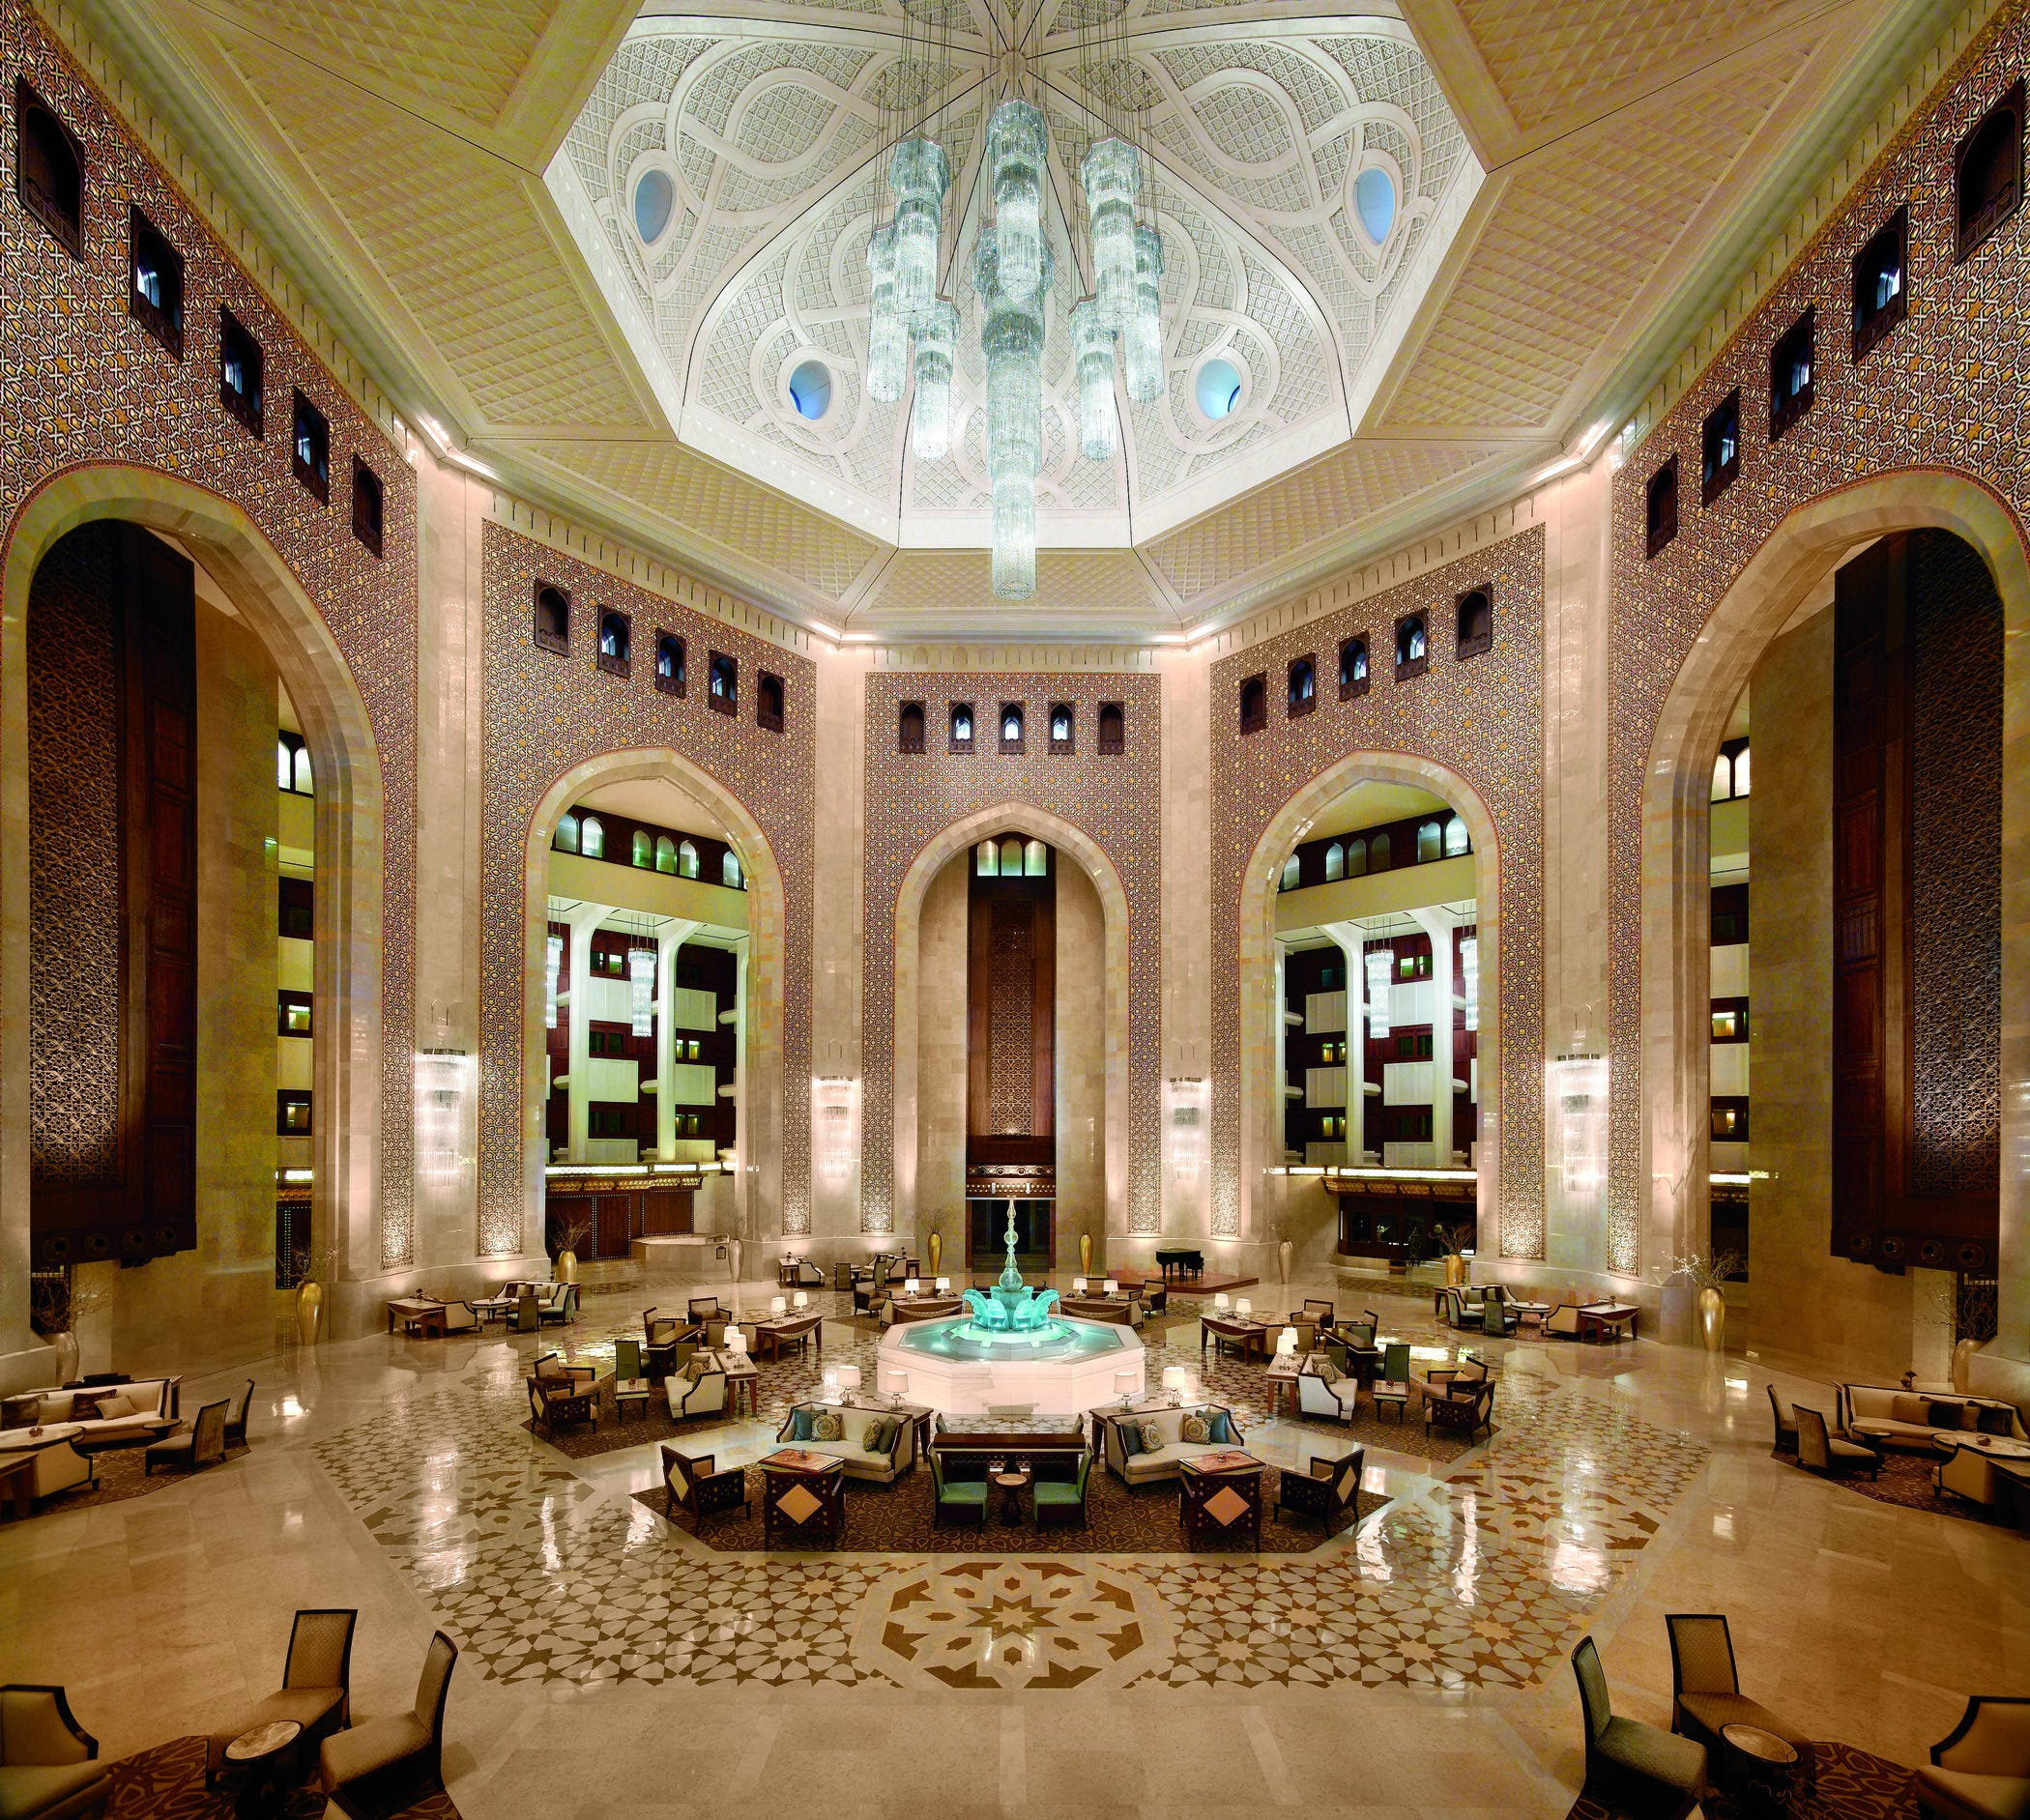 The Atrium Lobby of Al Bustan Palace, a Ritz-Carlton property in Oman, features a majestic ceiling and is encircled by bold arches.